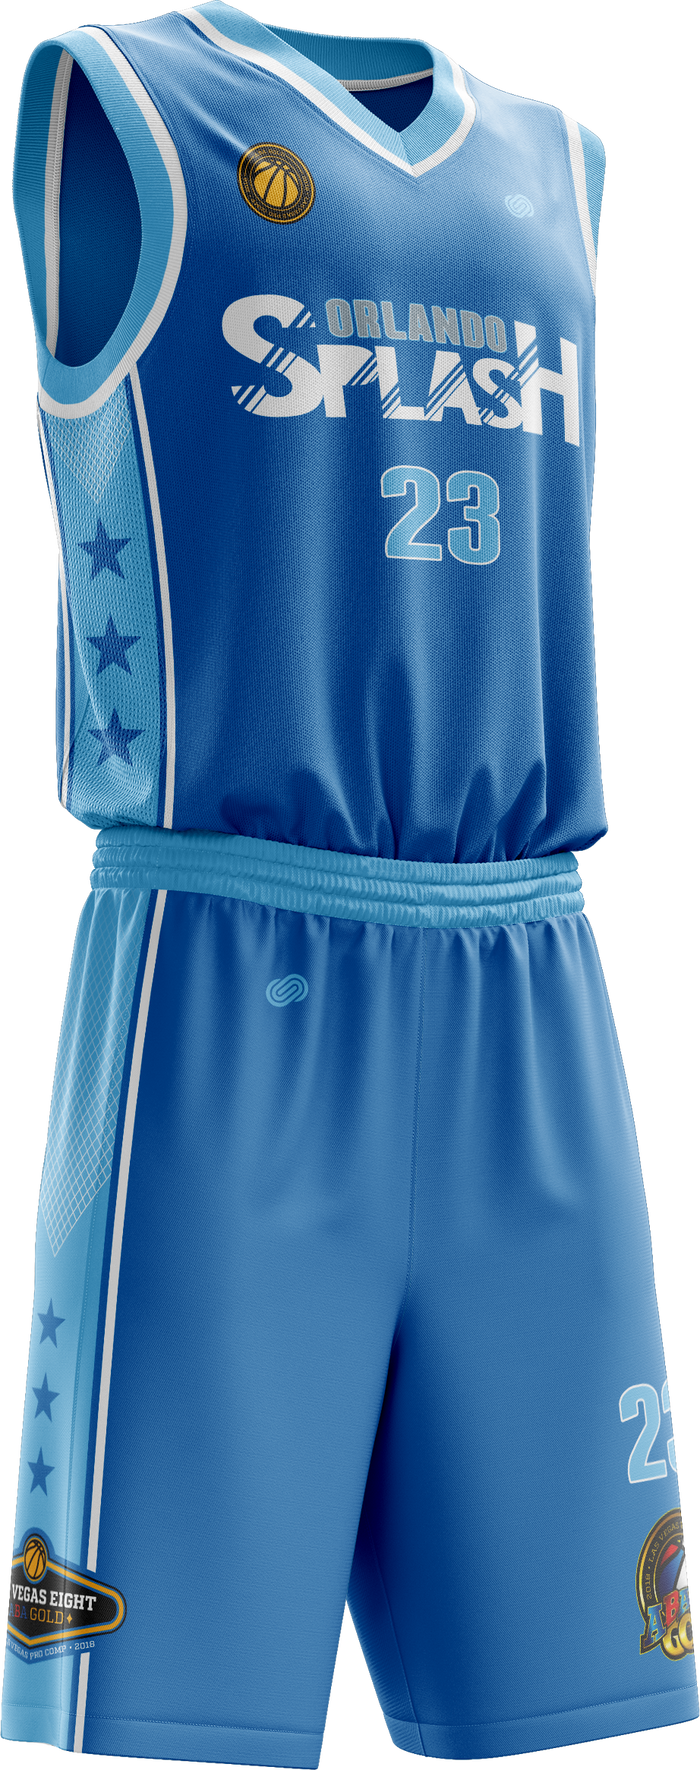 Orlando Splash Home Uniform